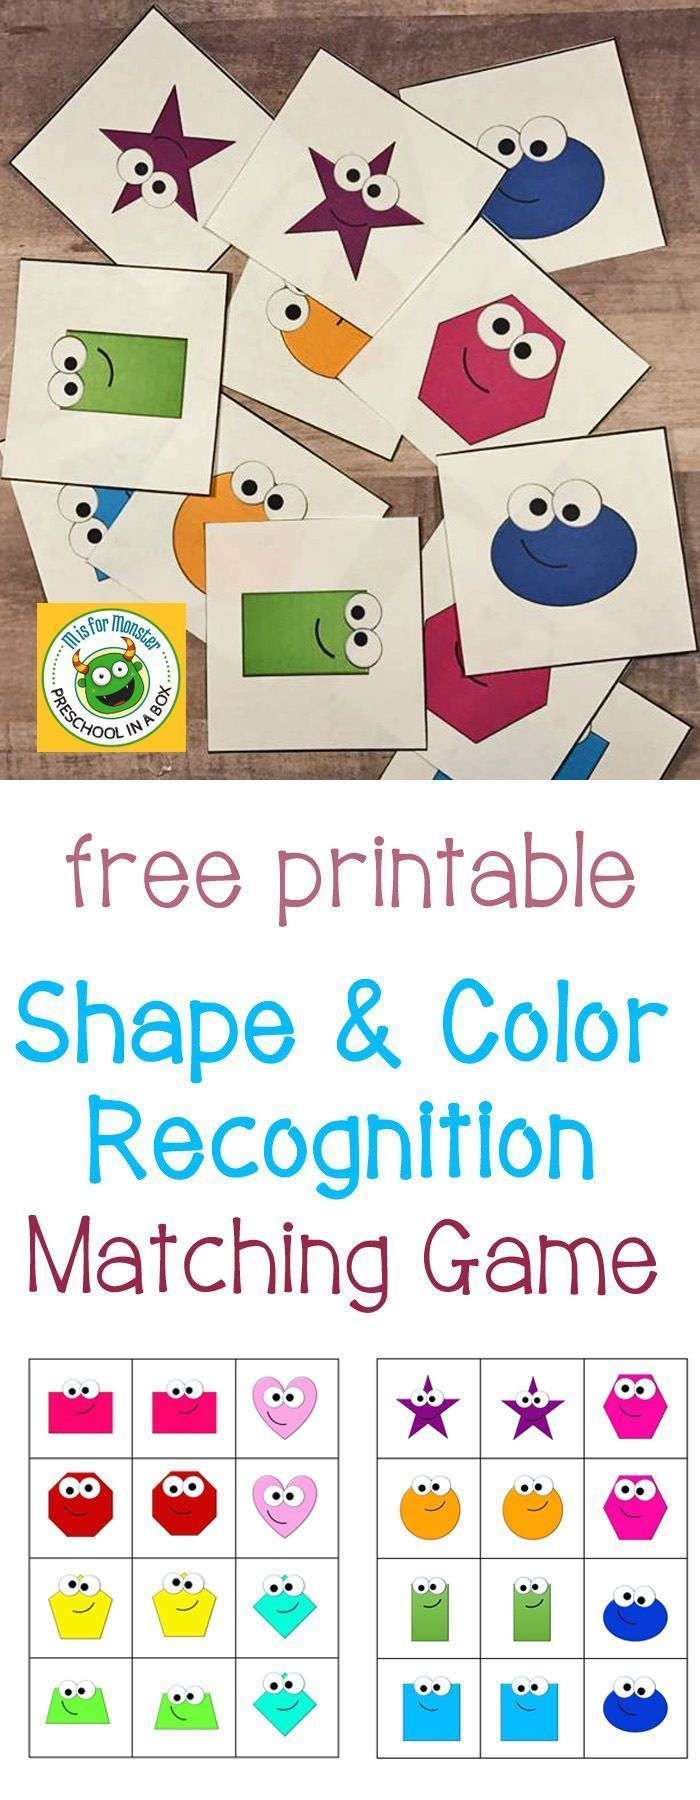 Free Printable Shape And Color Recognition Matching Game A Shape And Color Activity Shape Activities Preschool Preschool Color Activities Preschool Activities